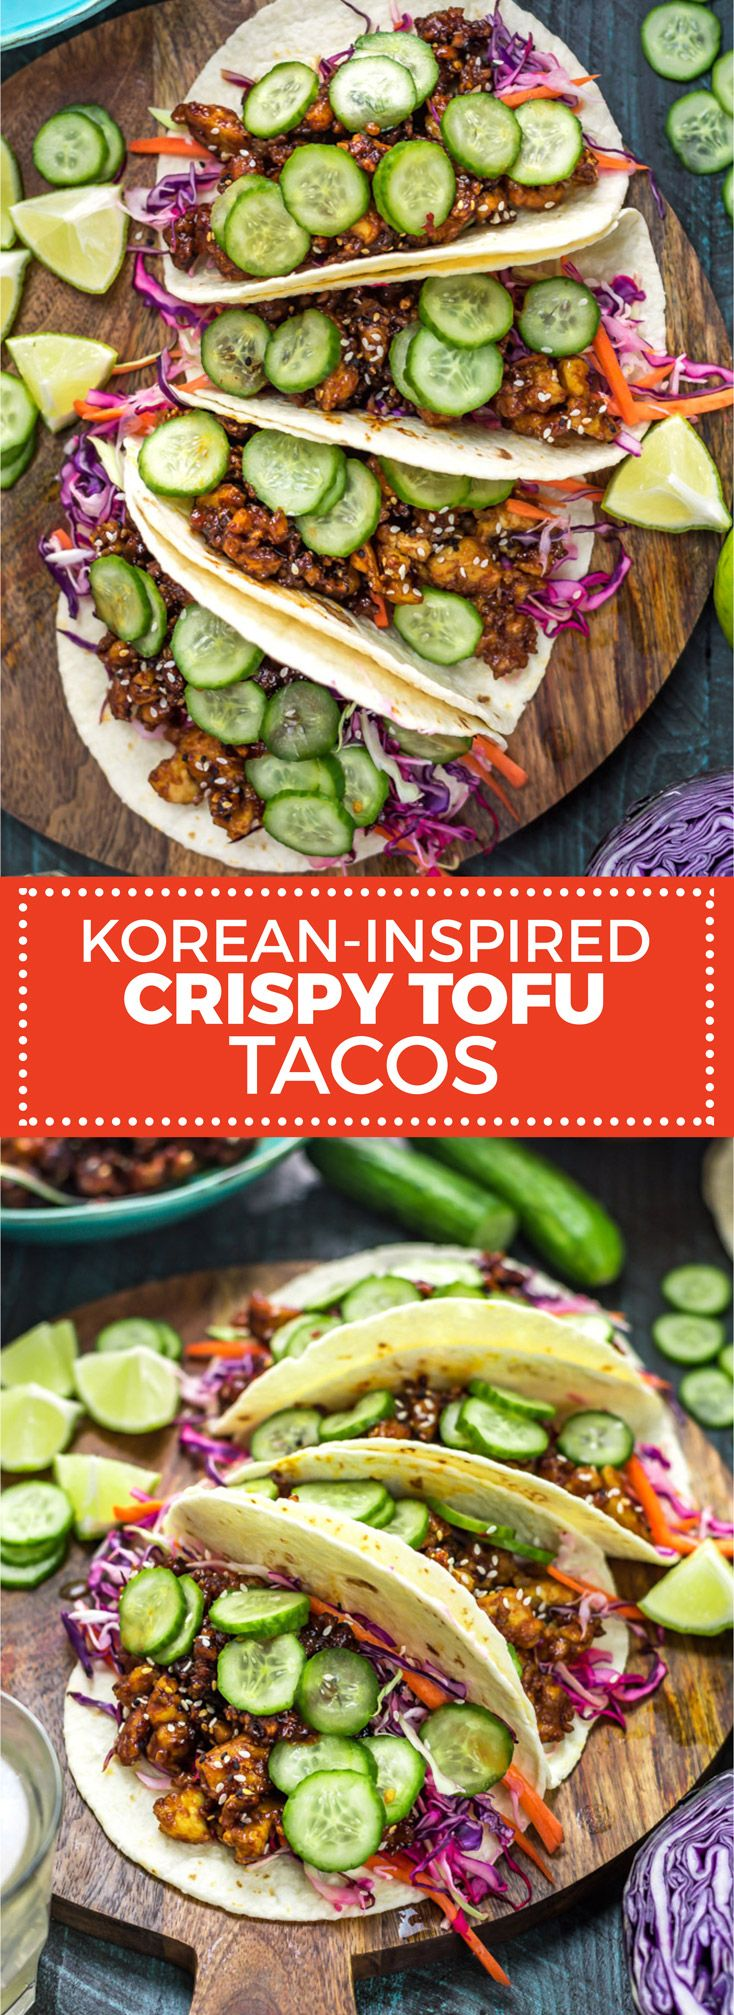 Korean-Inspired Crispy Tofu Tacos - Host The Toast